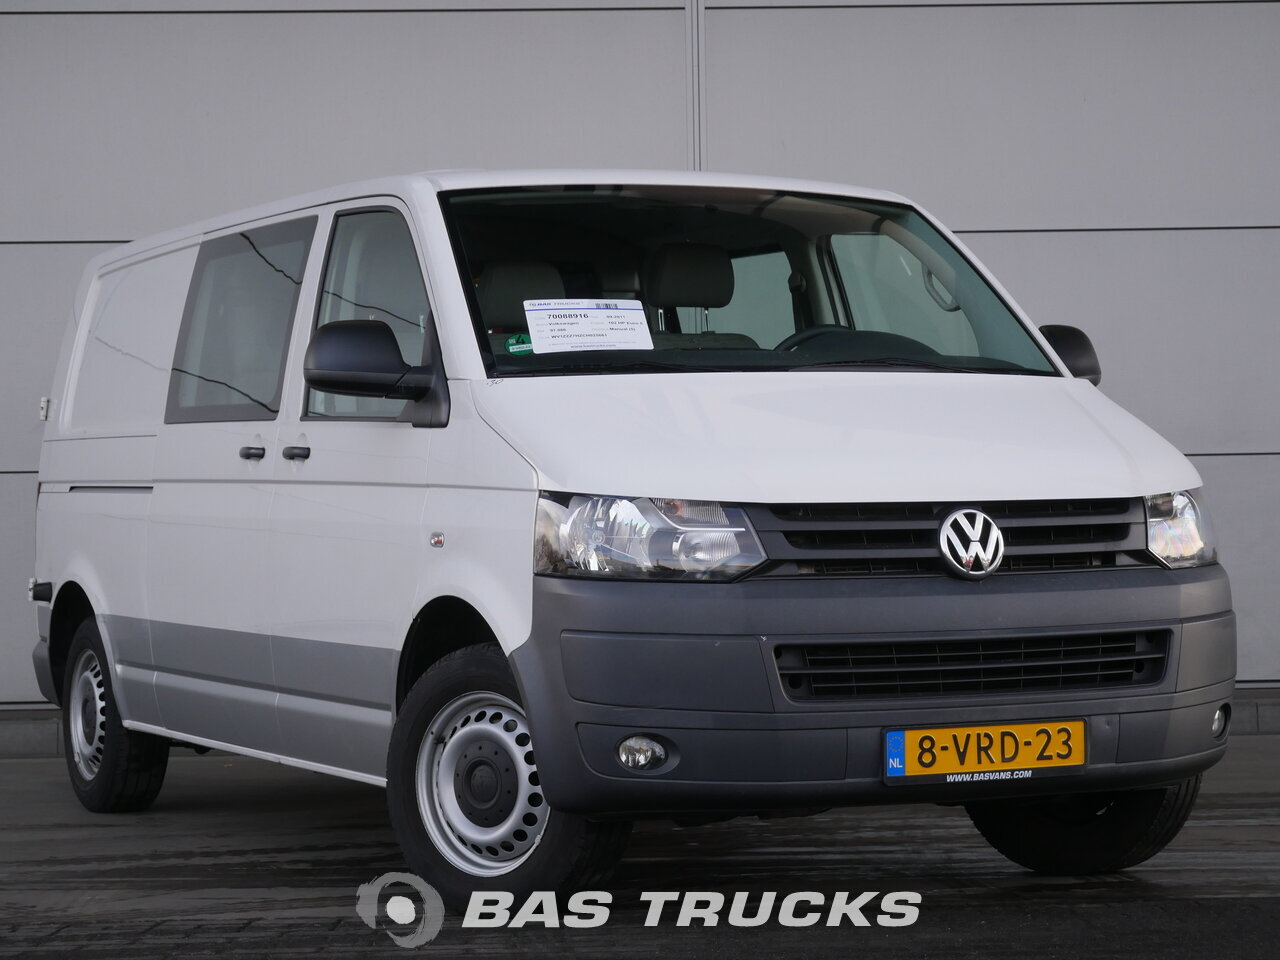 volkswagen transporter lcv euro 5 13900 bas trucks. Black Bedroom Furniture Sets. Home Design Ideas